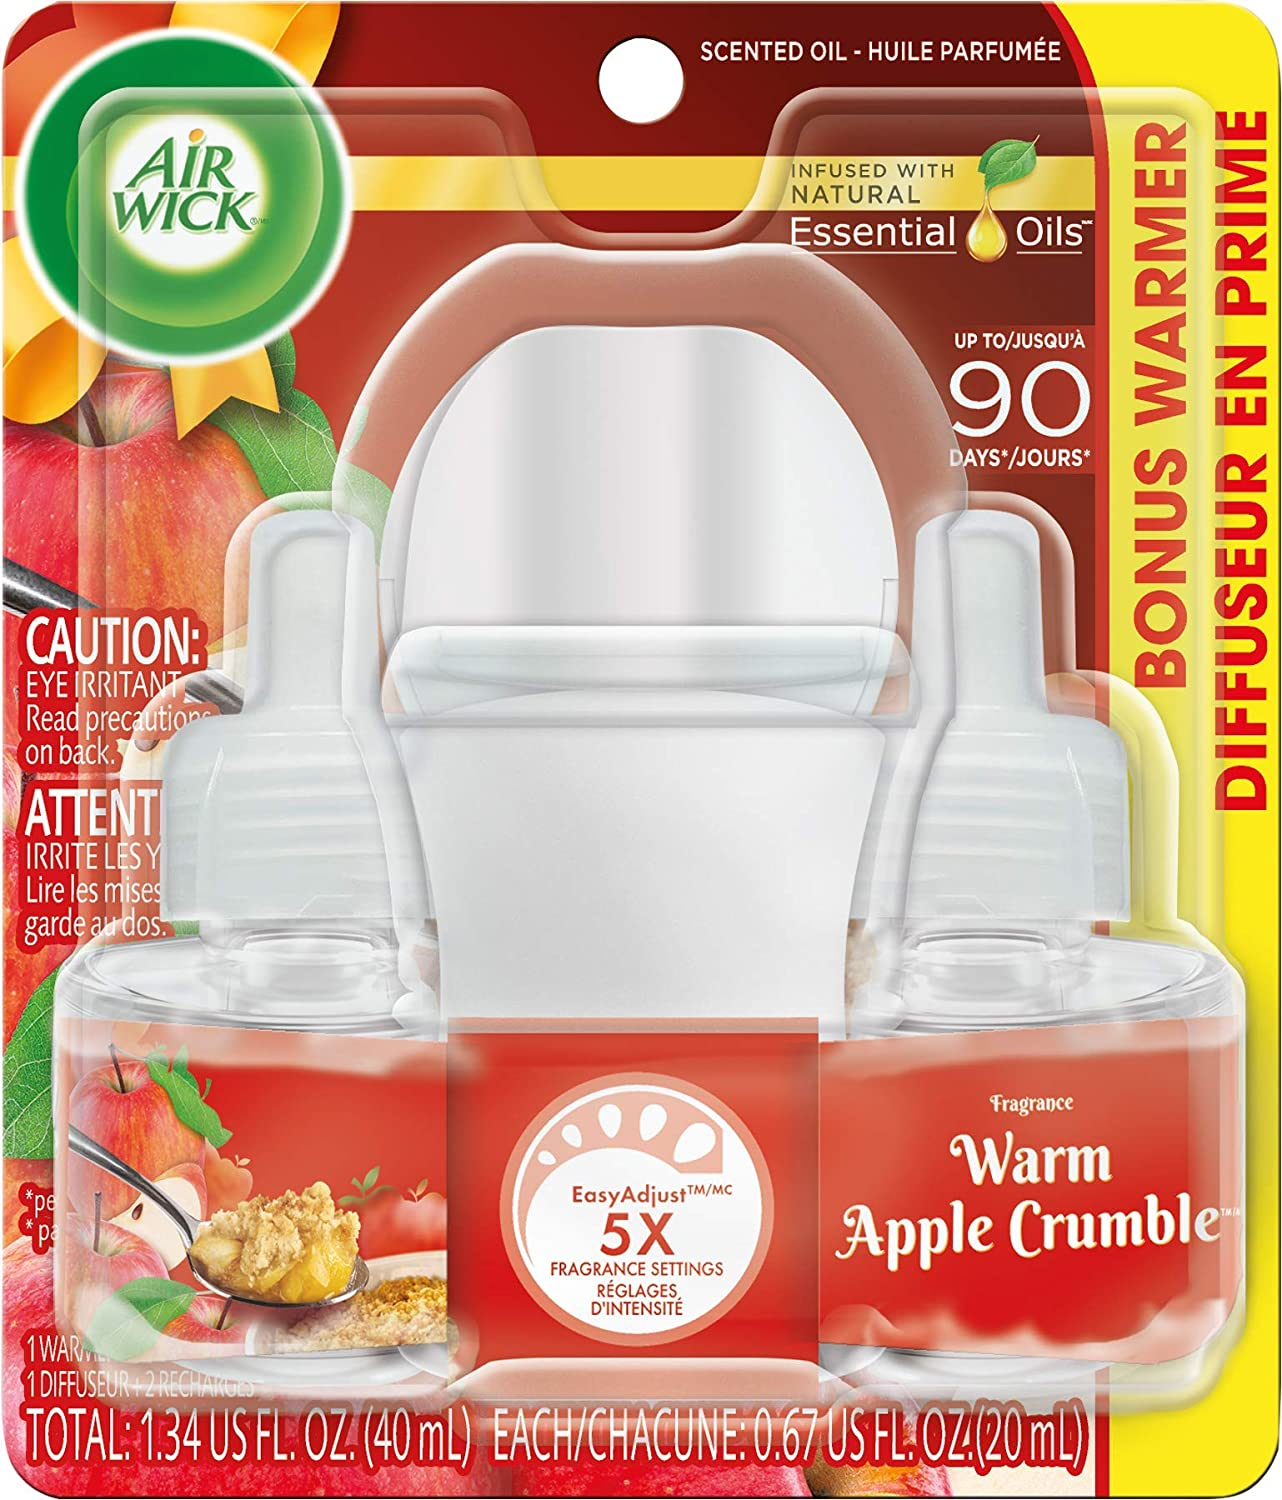 Air Wick Warm Apple Crumble Scented Oil Starter Kit (1 Warmer+2 Refills)